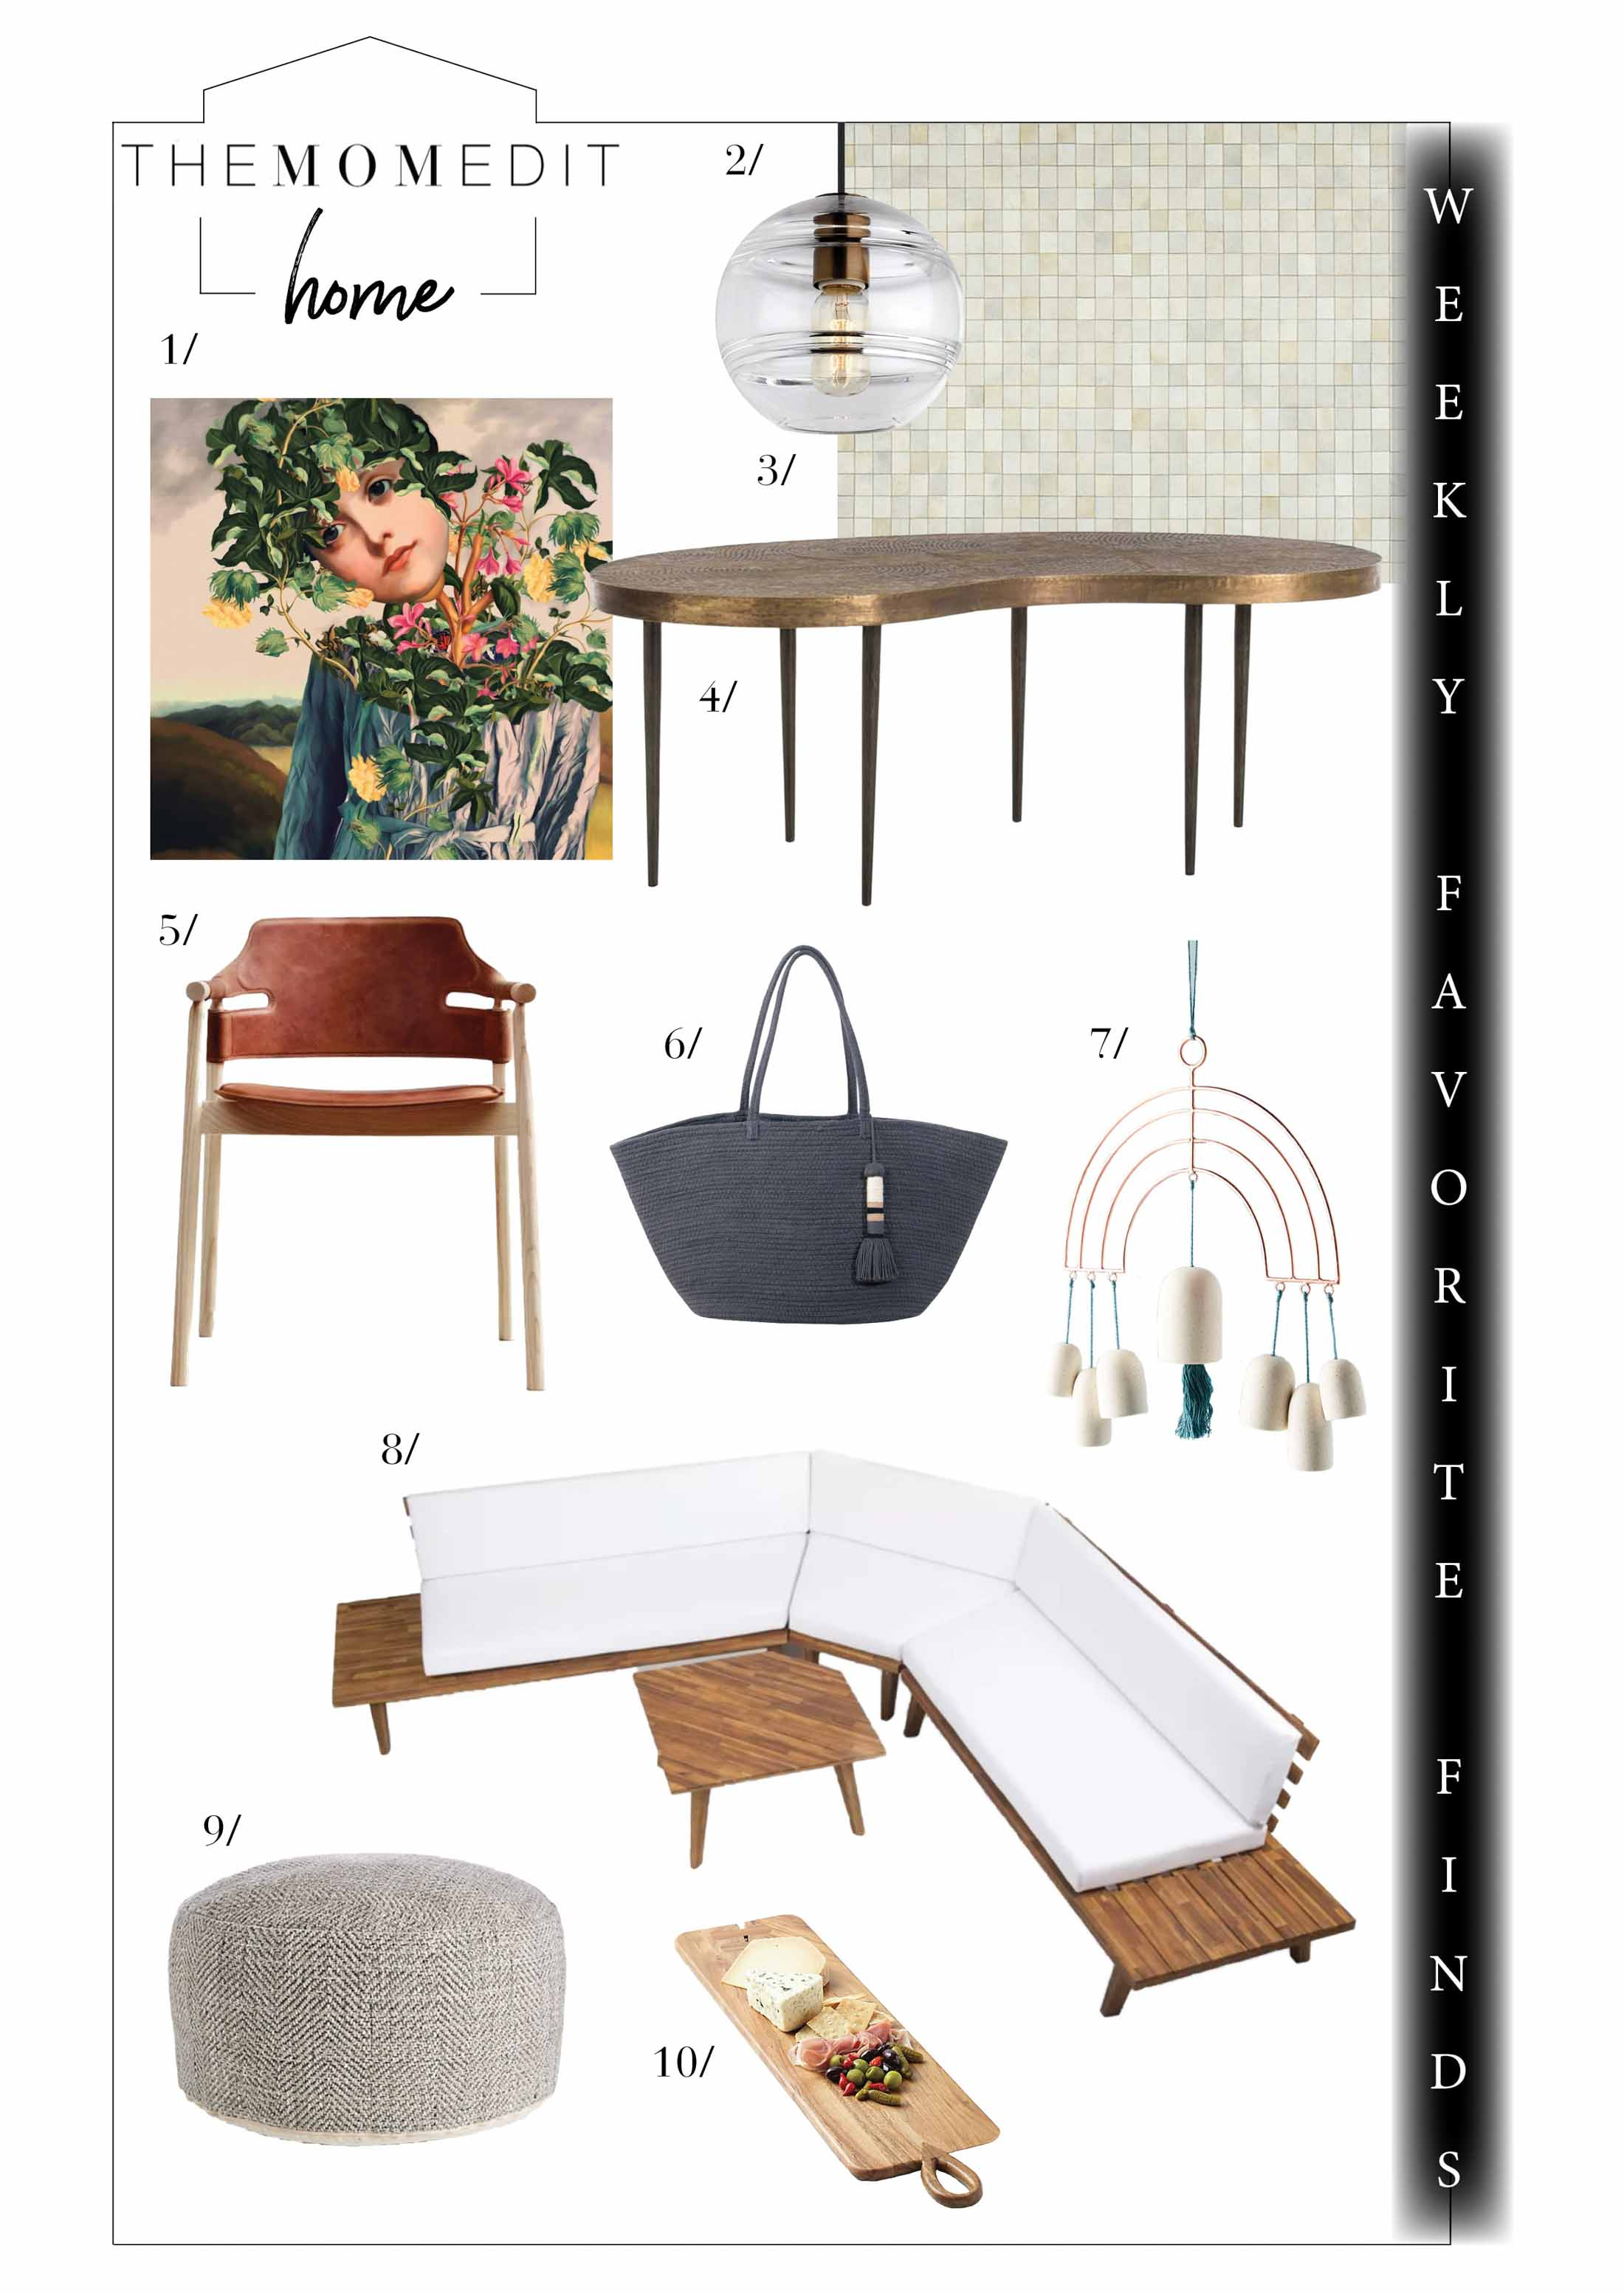 Summer fun furnishings & accents, inside & out for this week's favorite finds. Plus, sales at One Kings Lane, west elm, Crate & Barrel, & Nordstrom. On it!